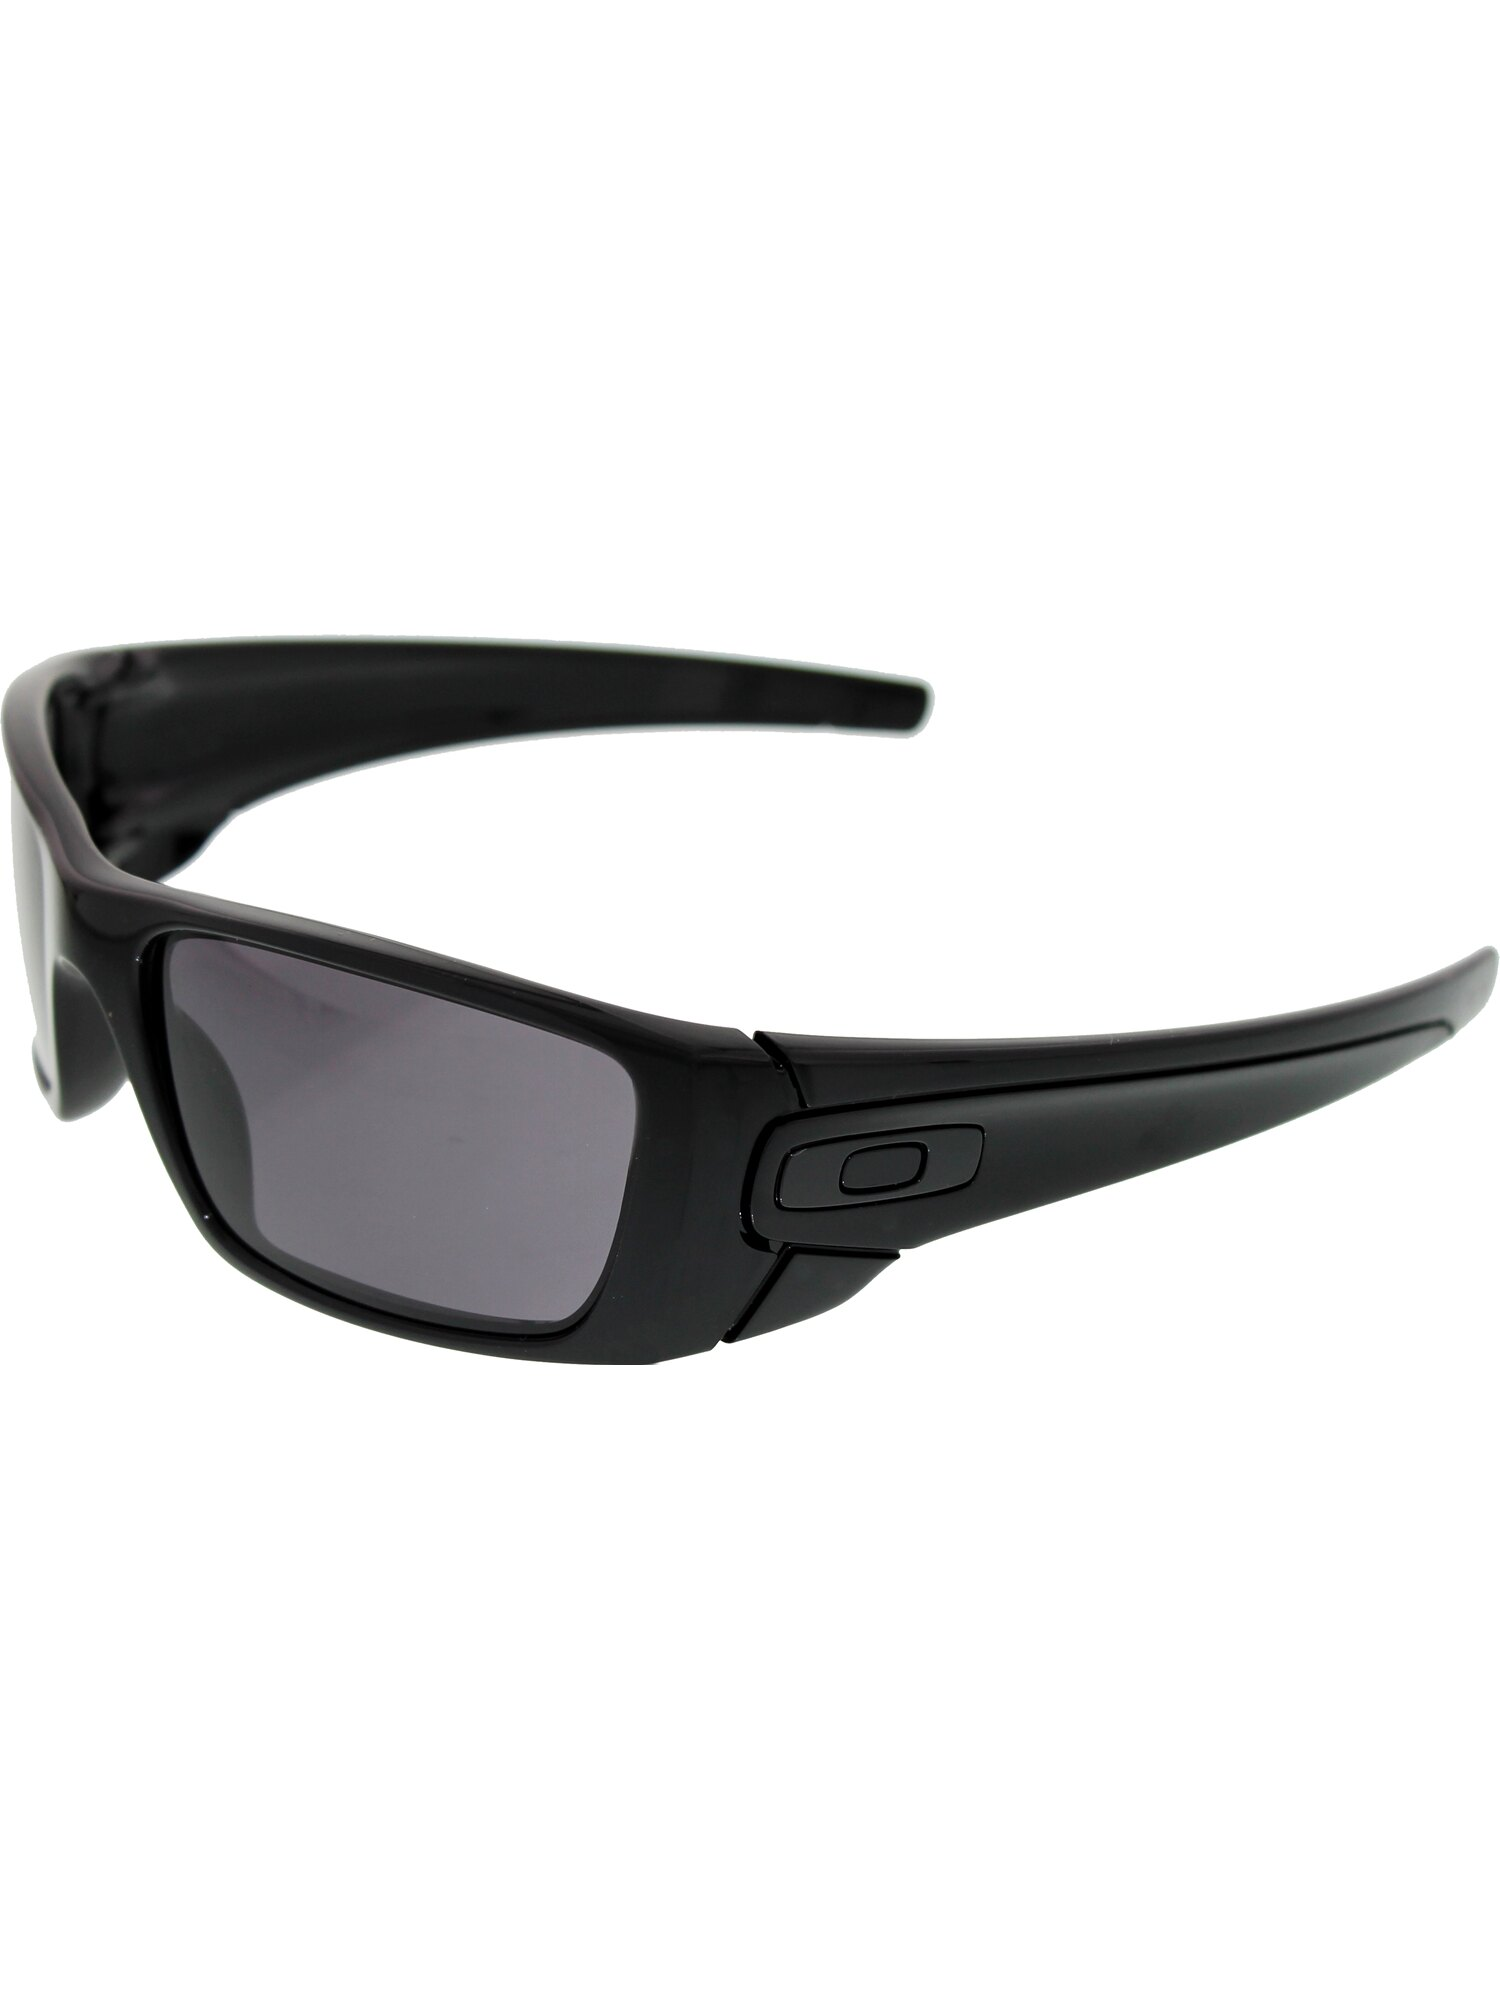 Oakley Fuel Cell Wrap Mens Sunglasses (Polished Black)